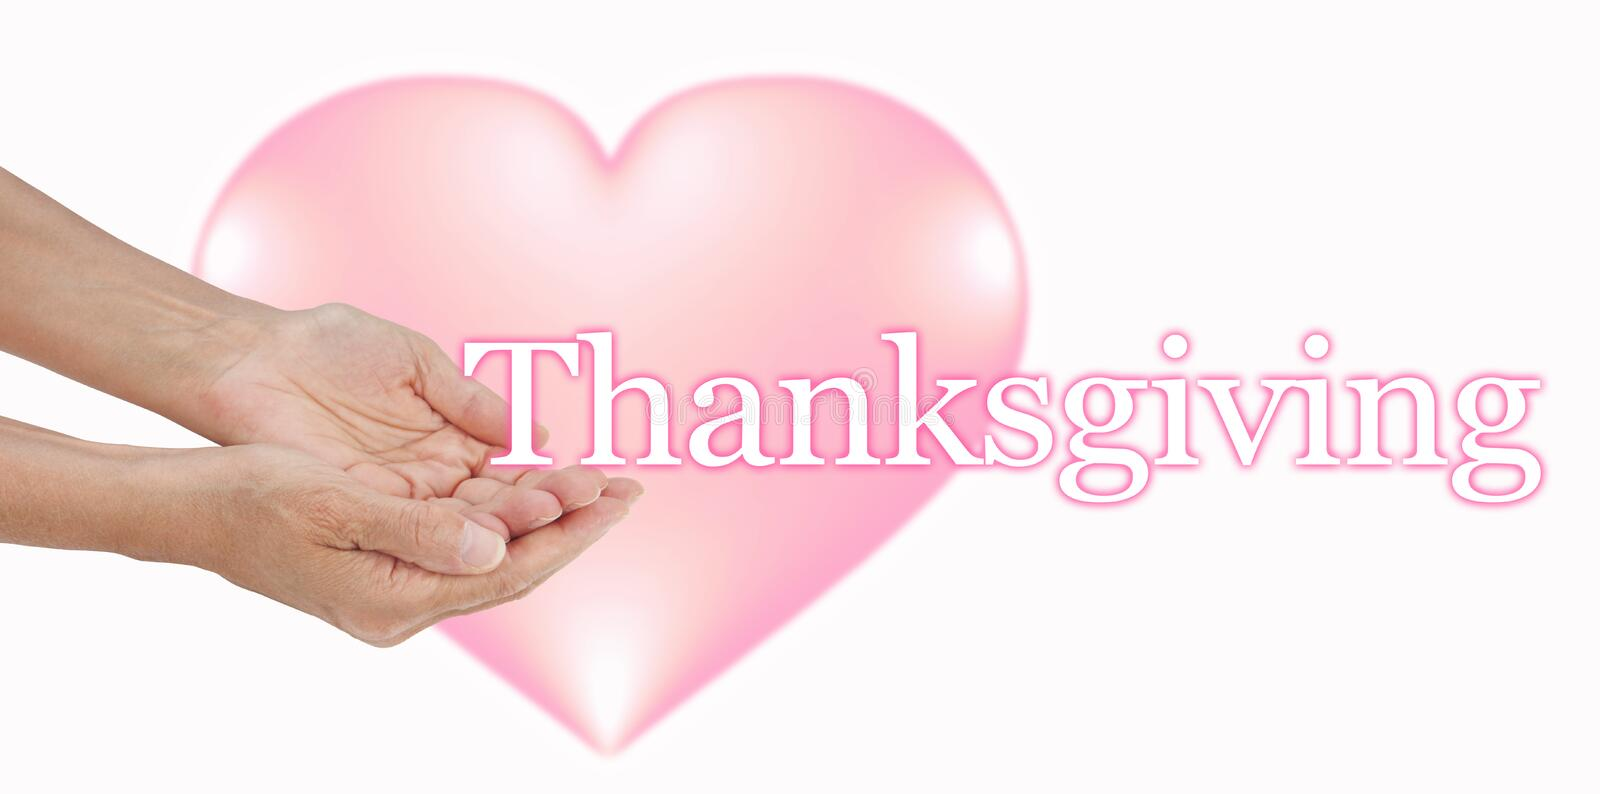 Share your Love at Thanksgiving stock images